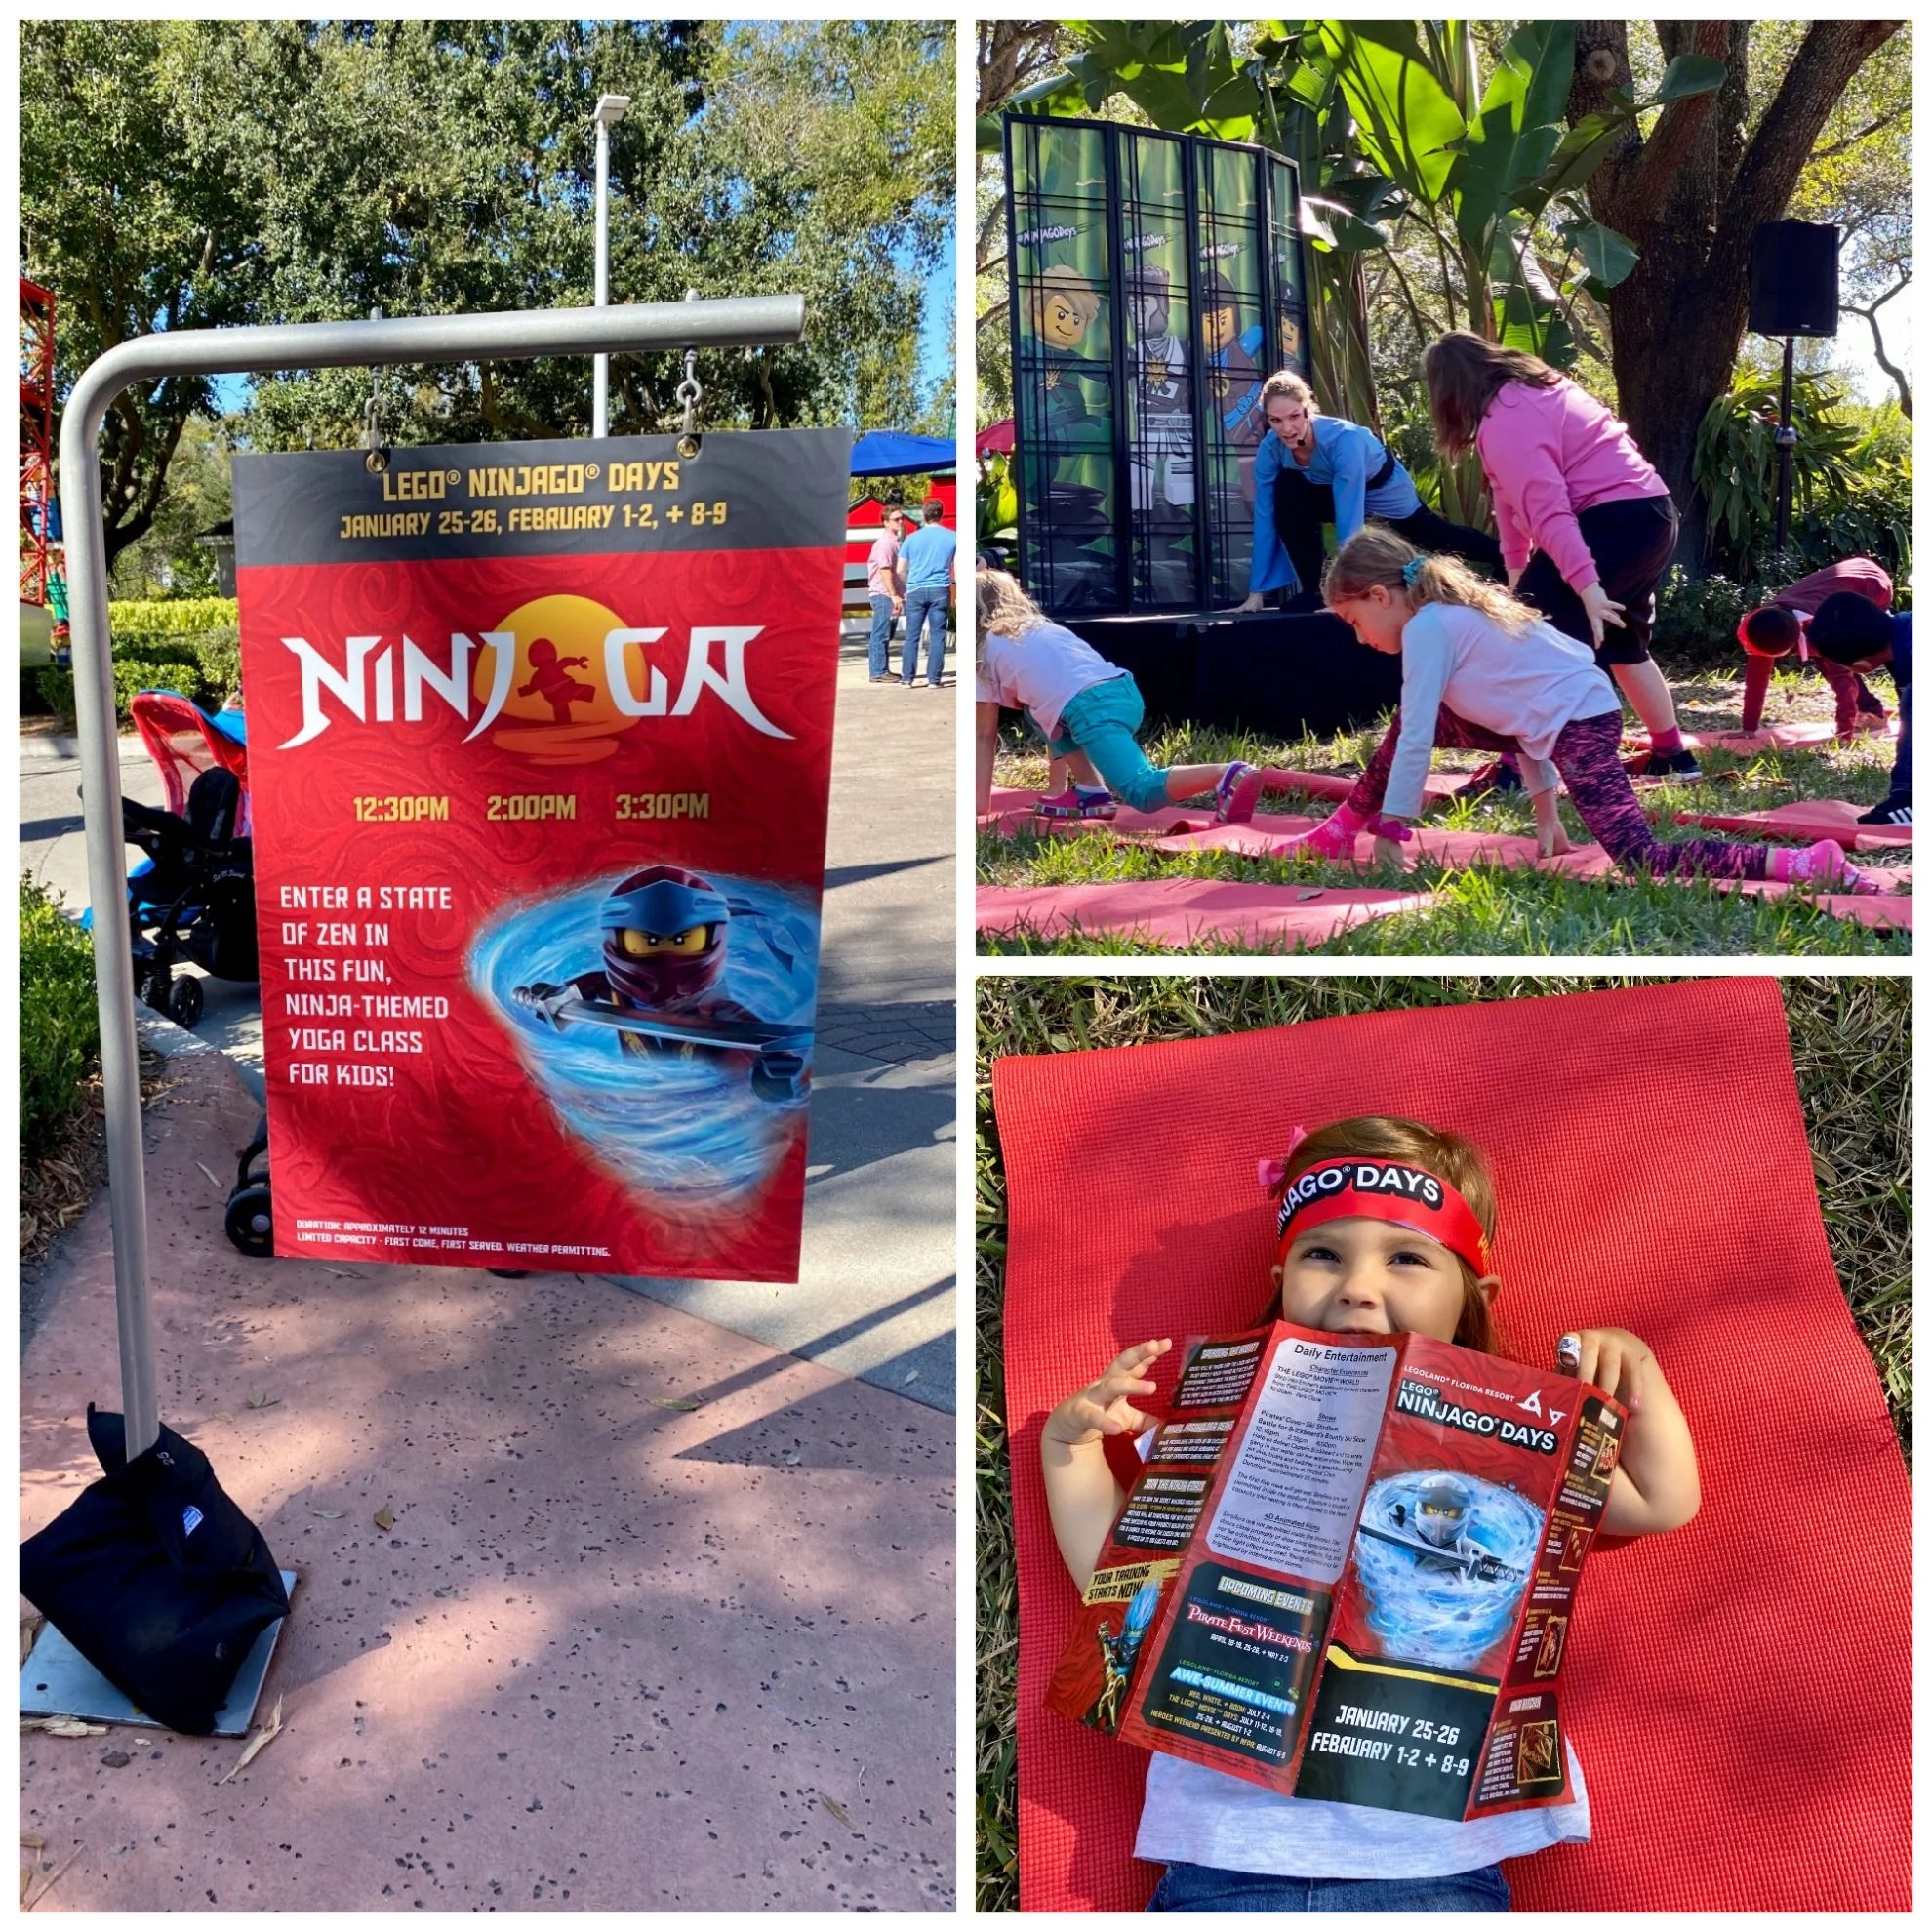 "NINJOGA - Achieve a state of zen or show off your wacky ninja moves during the ""ninjoga"" sessions – a yoga class just for kids!"